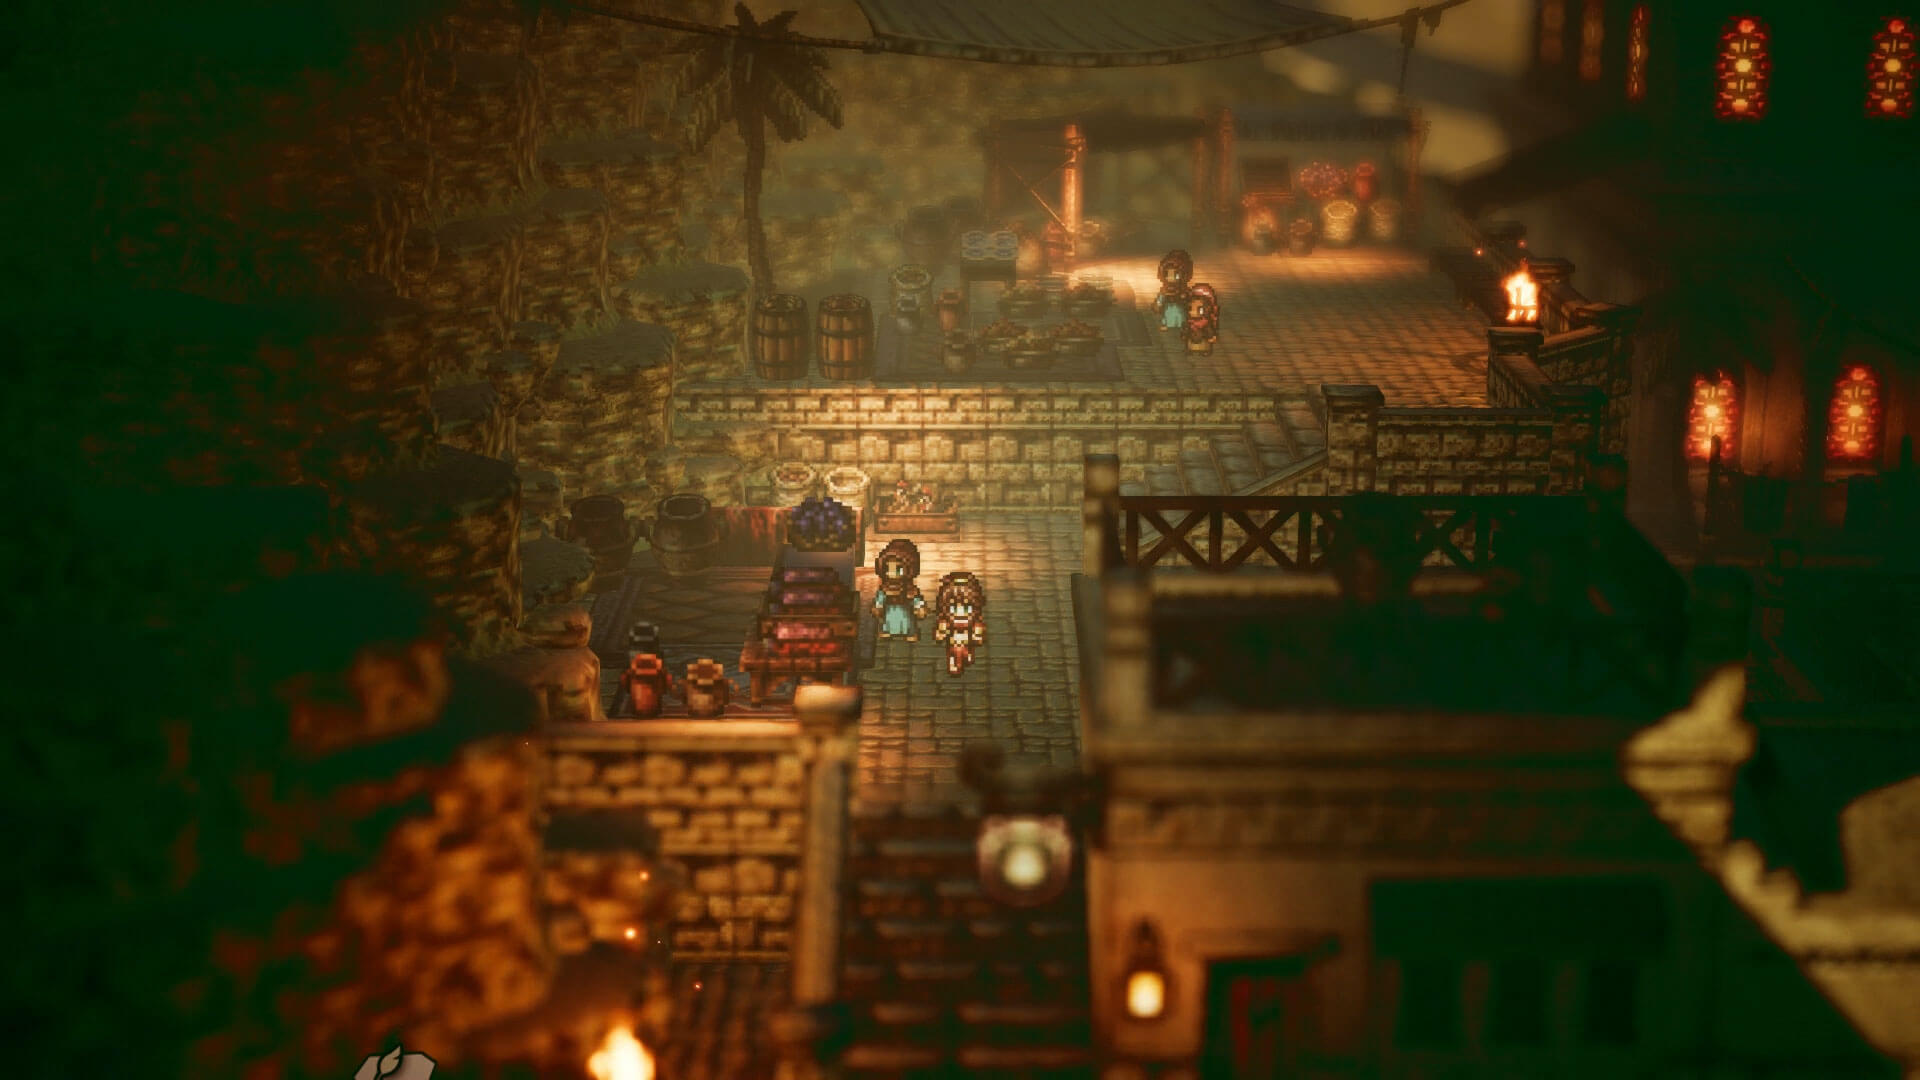 OCTOPATH_TRAVELER_Screenshot_Primrose_3.jpg